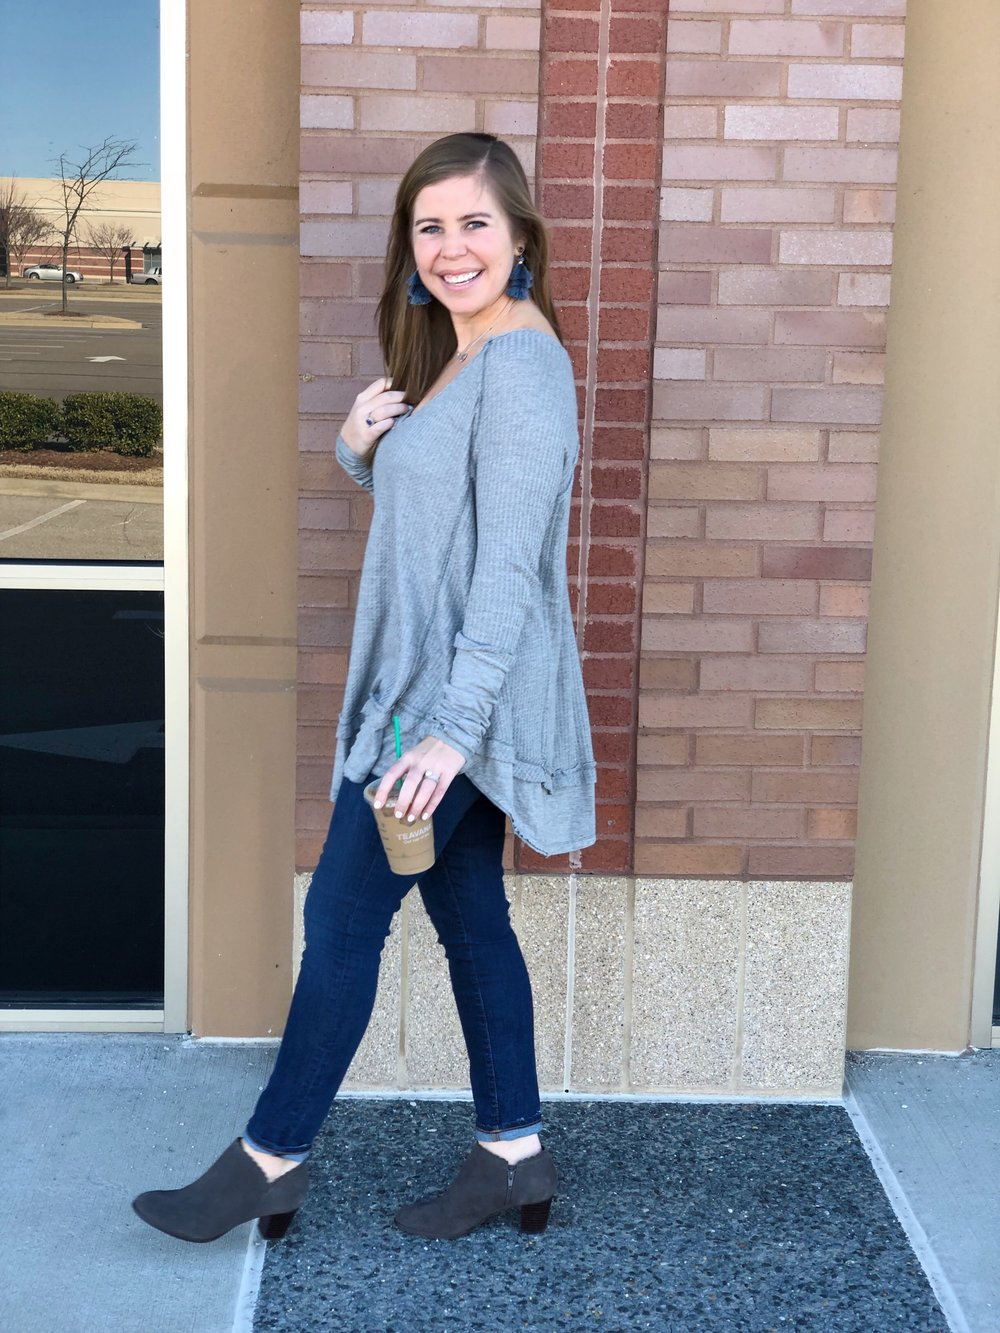 Free People Laguna Thermal  //  Jeans  //  Booties ( included in the Jack Rogers sale!) //  Earrings